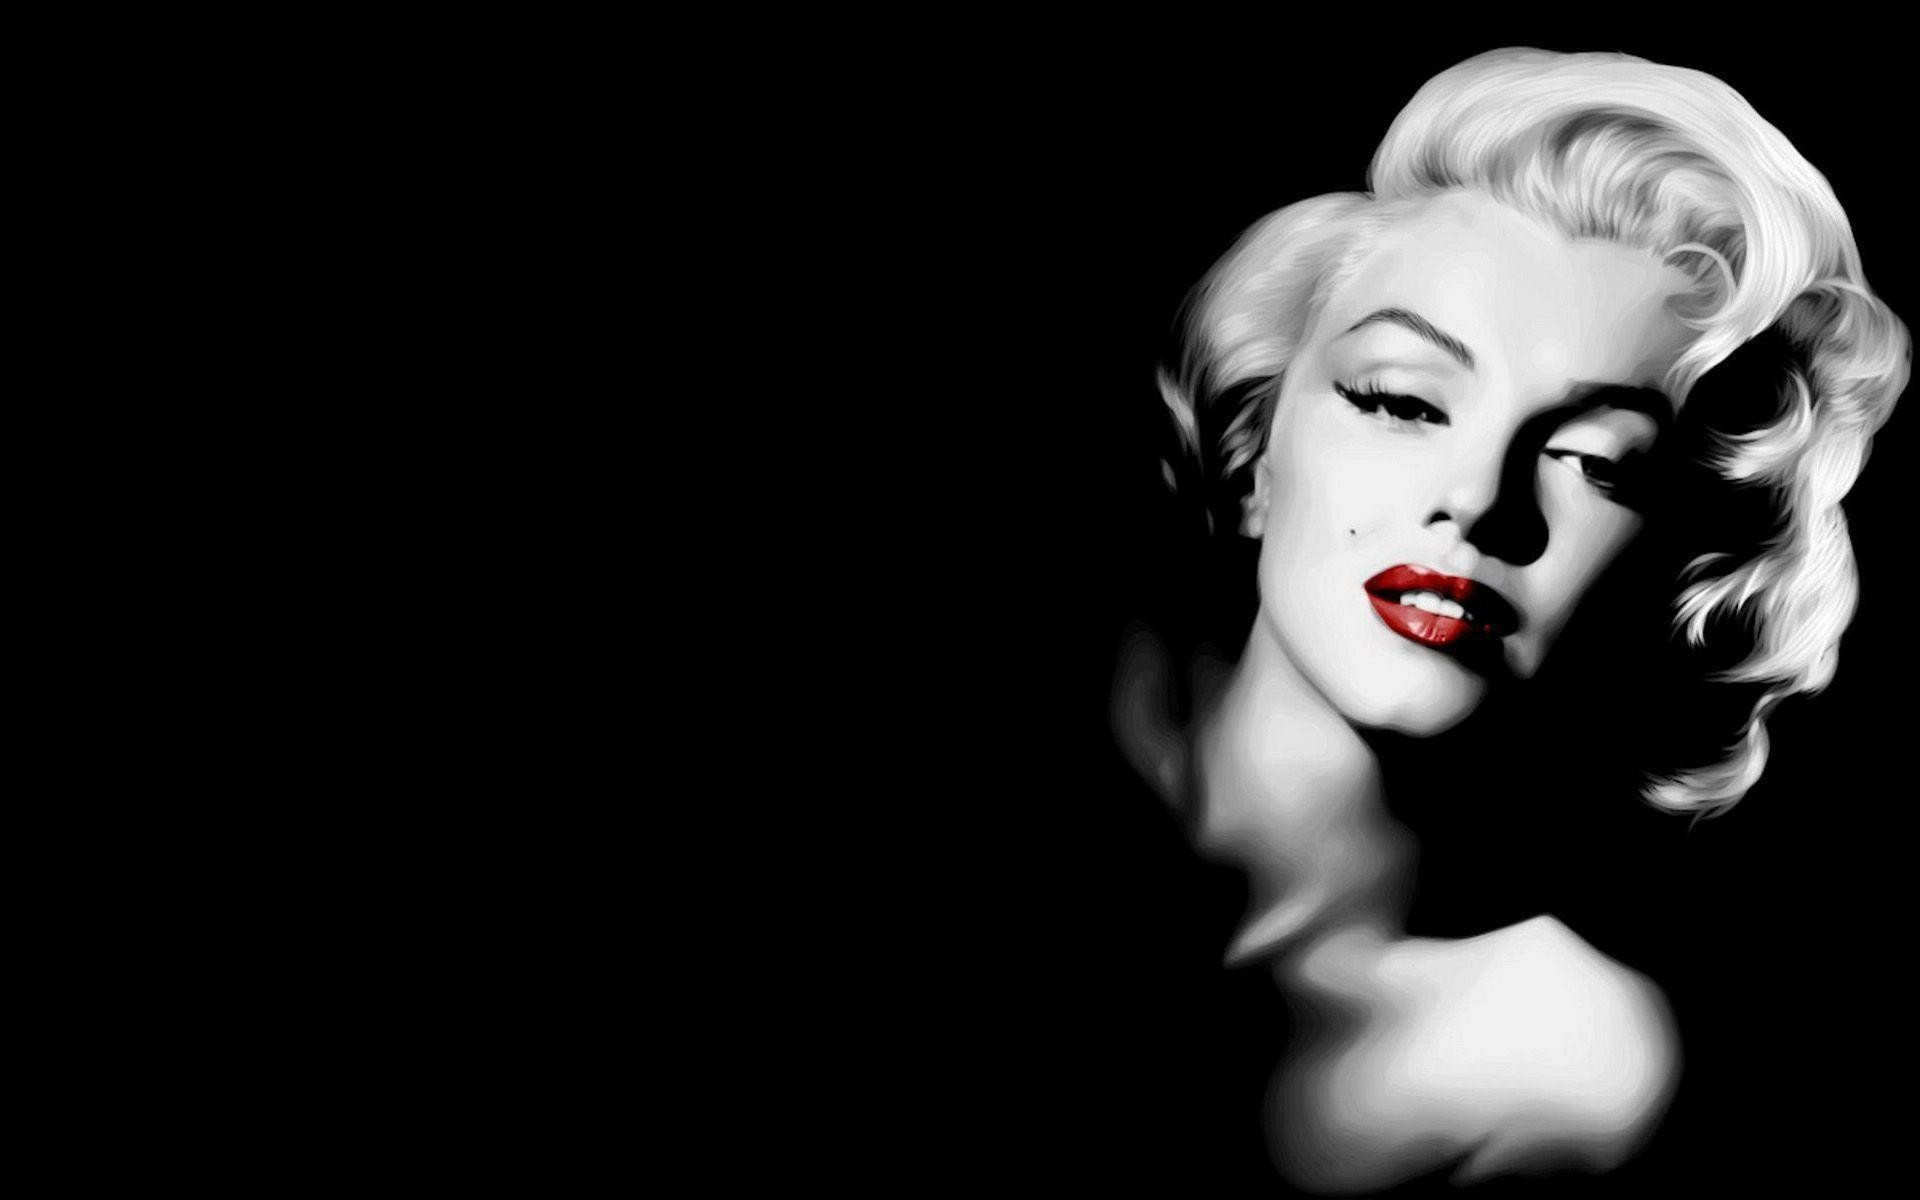 Res: 1920x1200, Artistic Marilyn Monroe Backgrounds Wallpapers